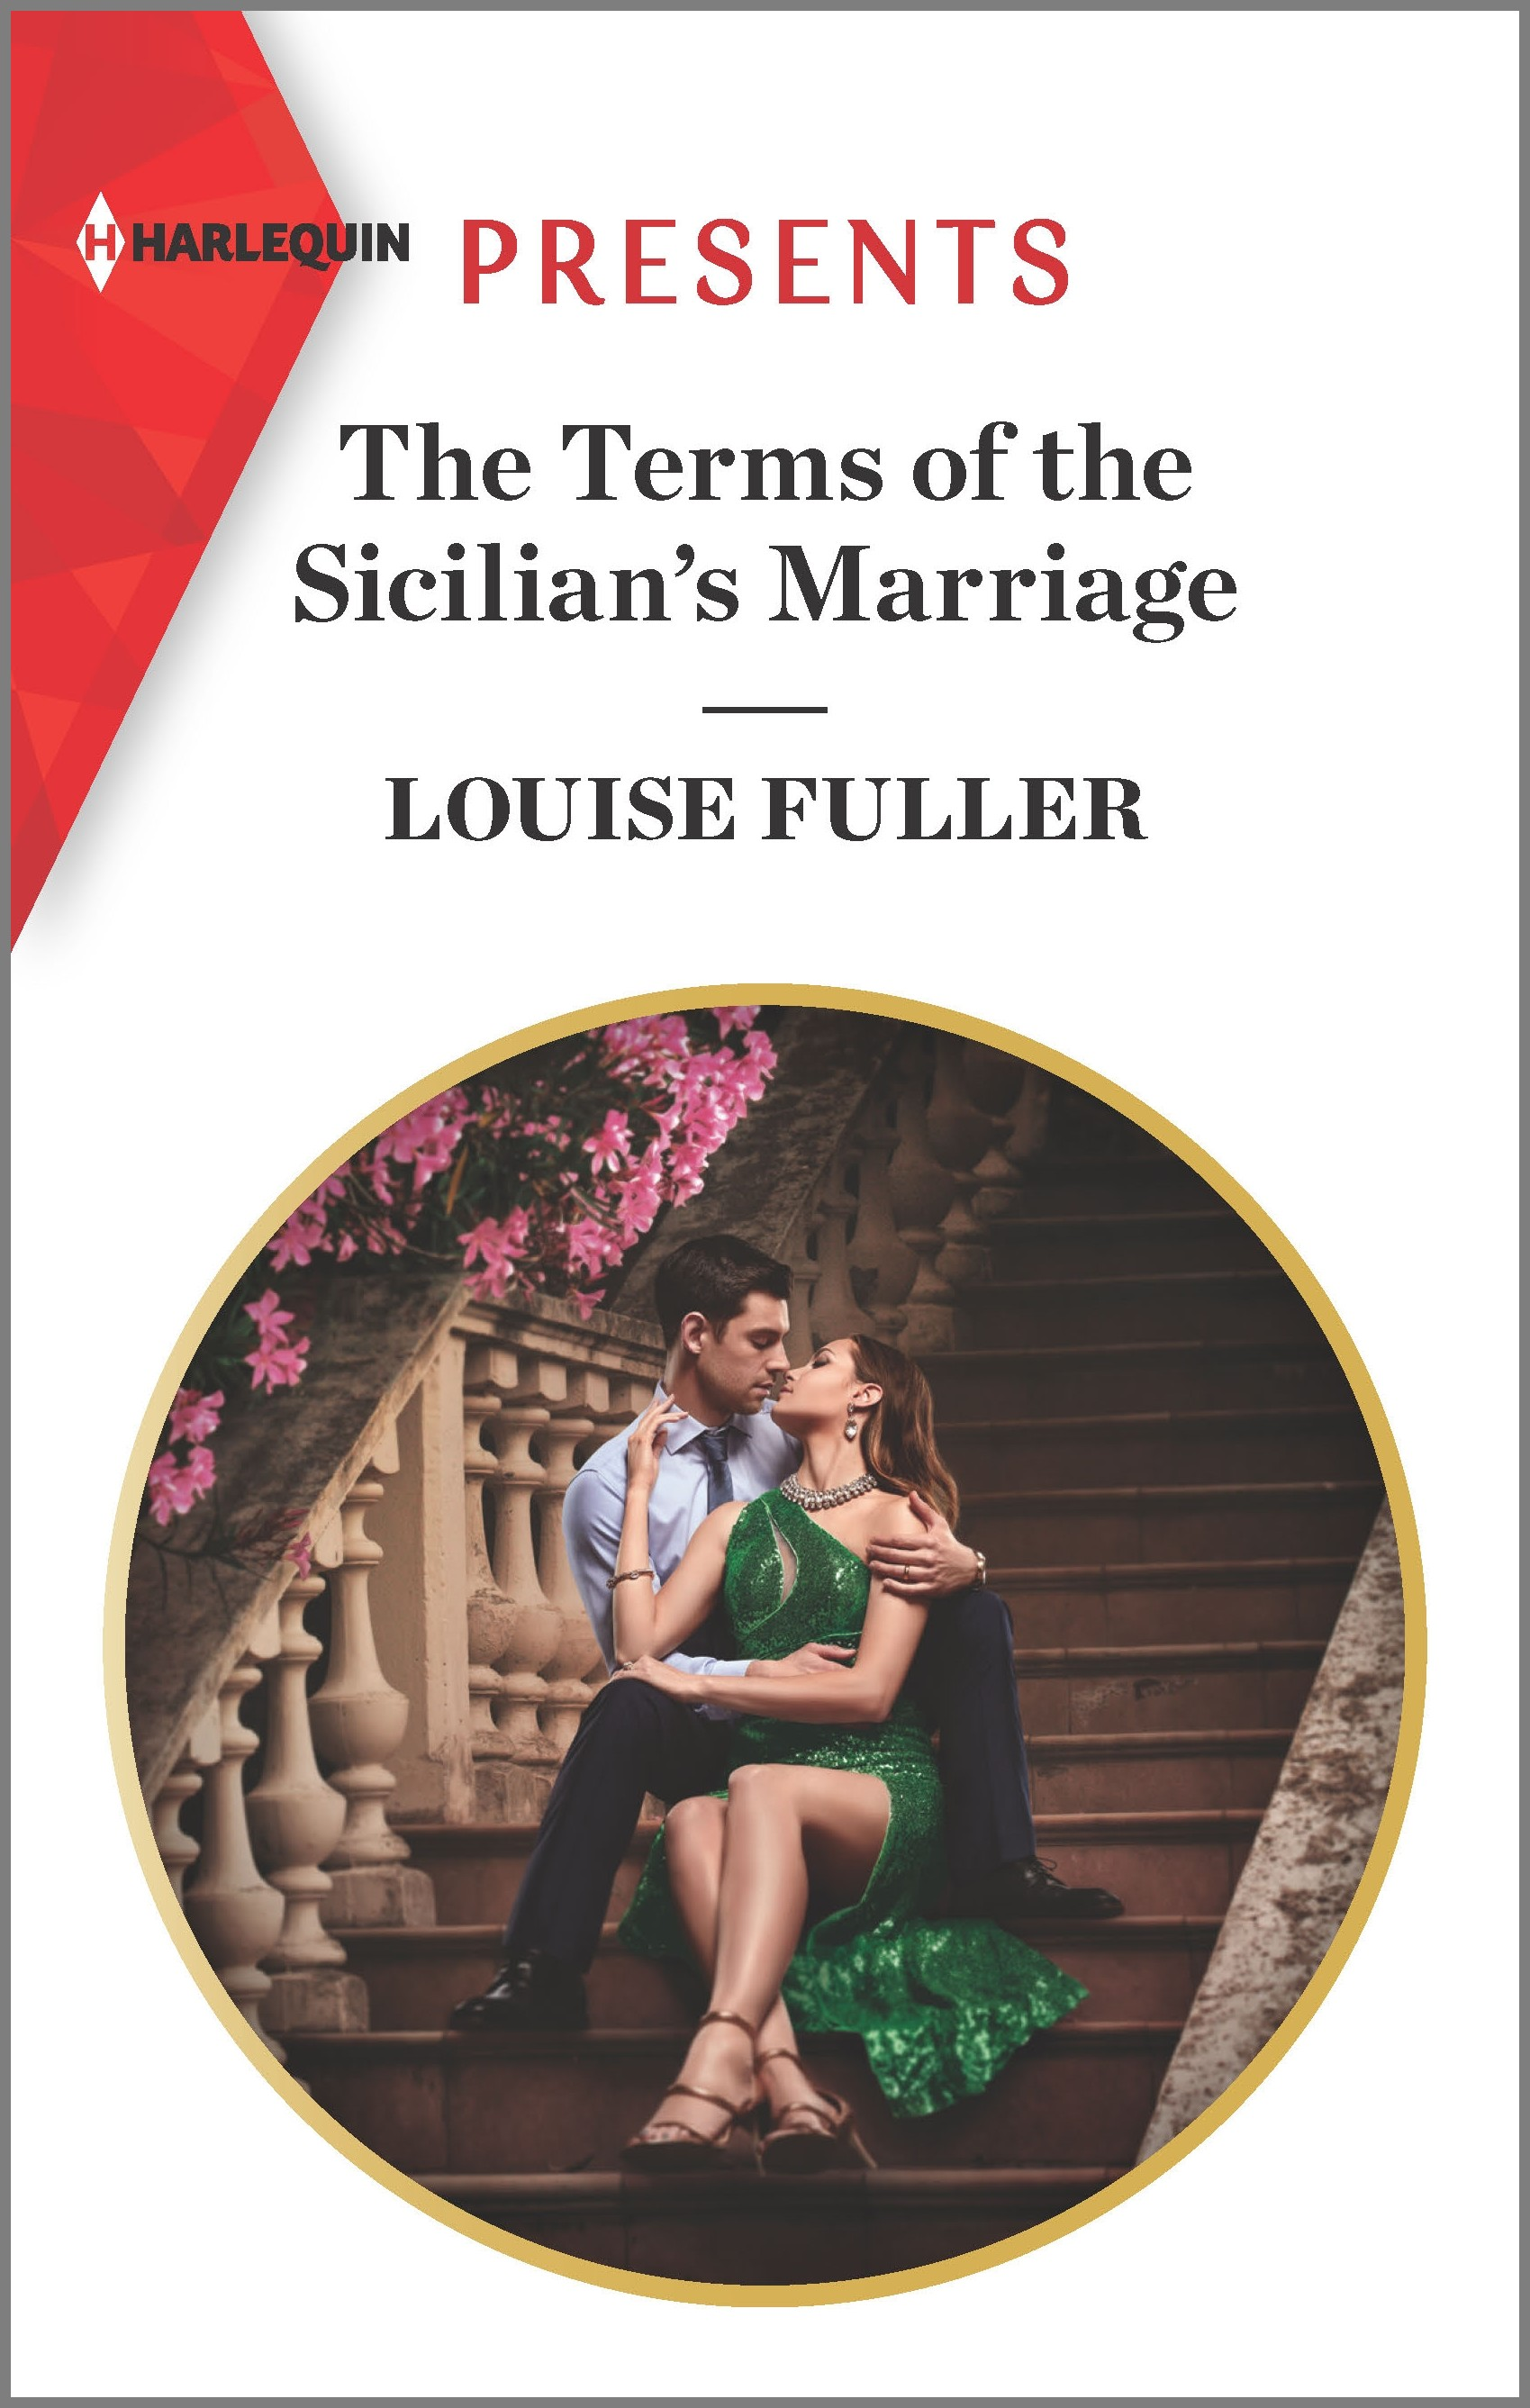 The Terms of the Sicilian's Marriage